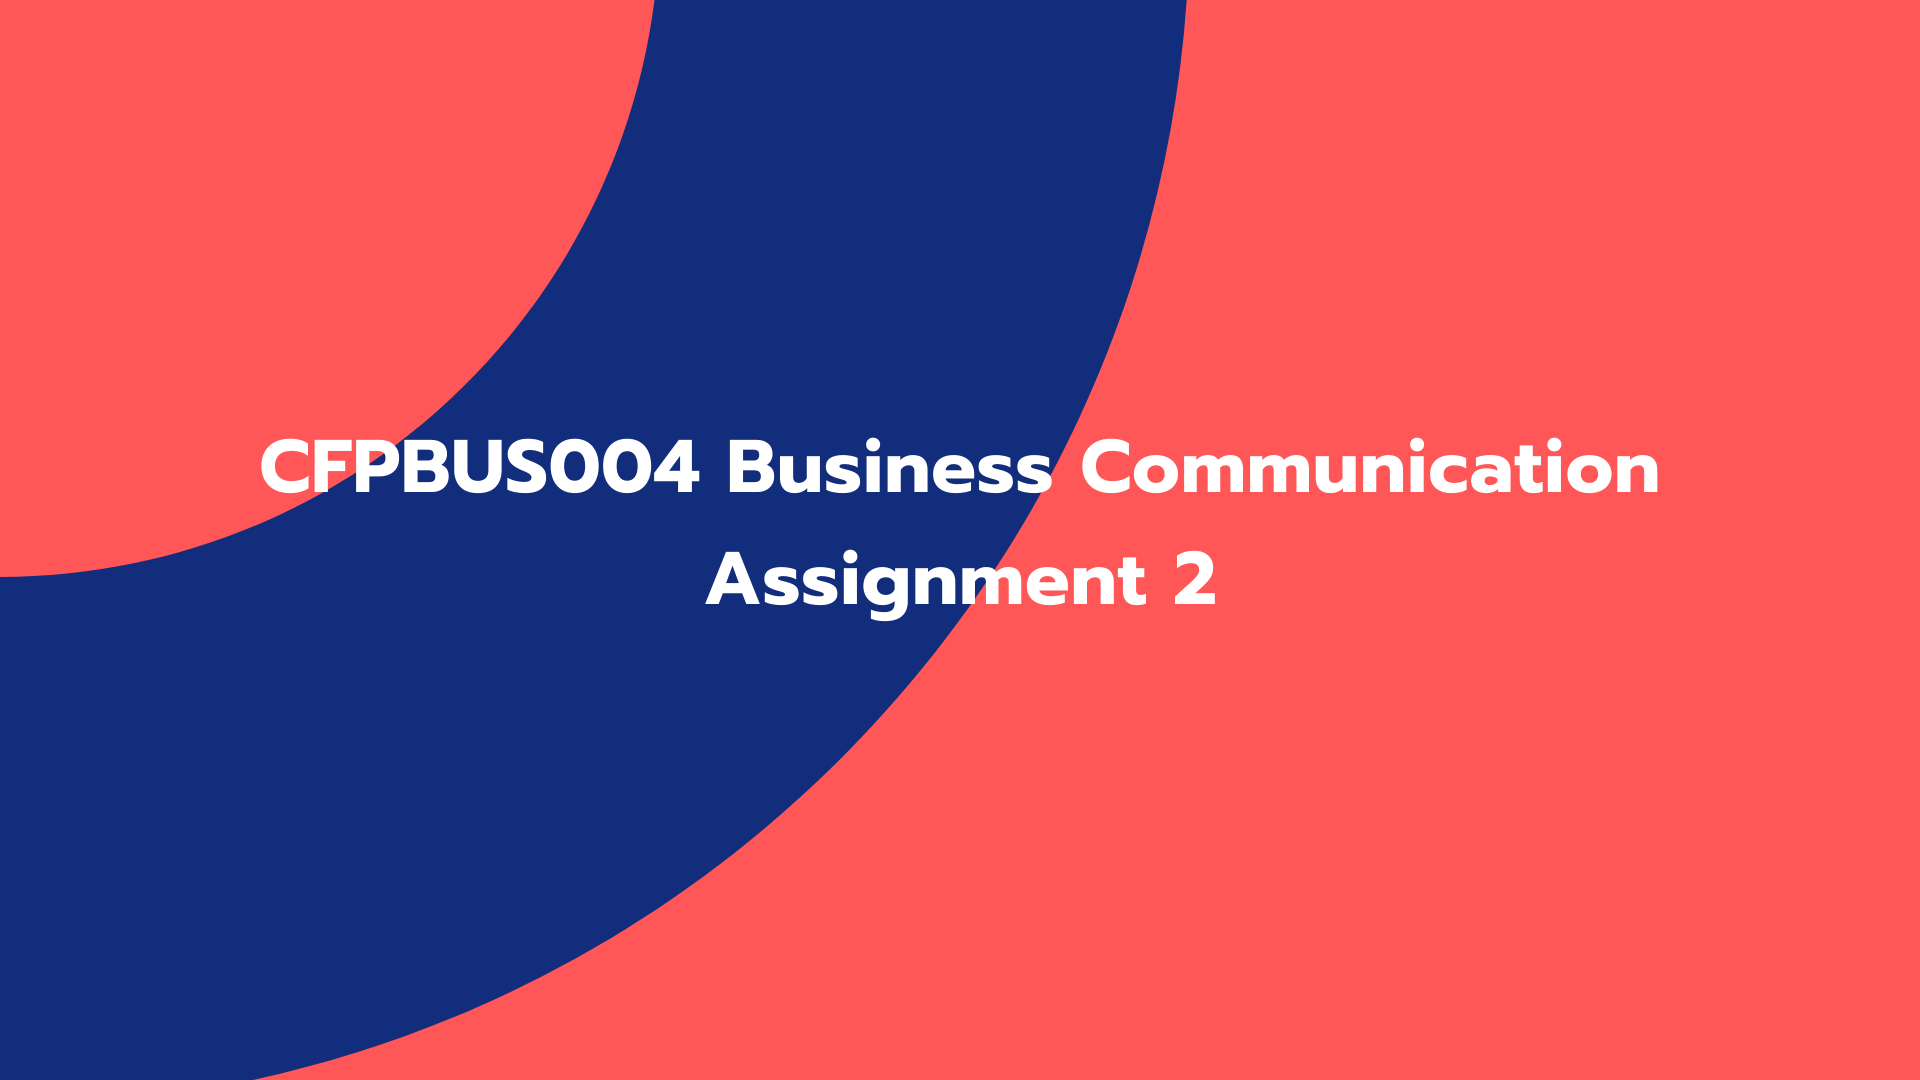 CFPBUS004 Business Communication Assignment 2